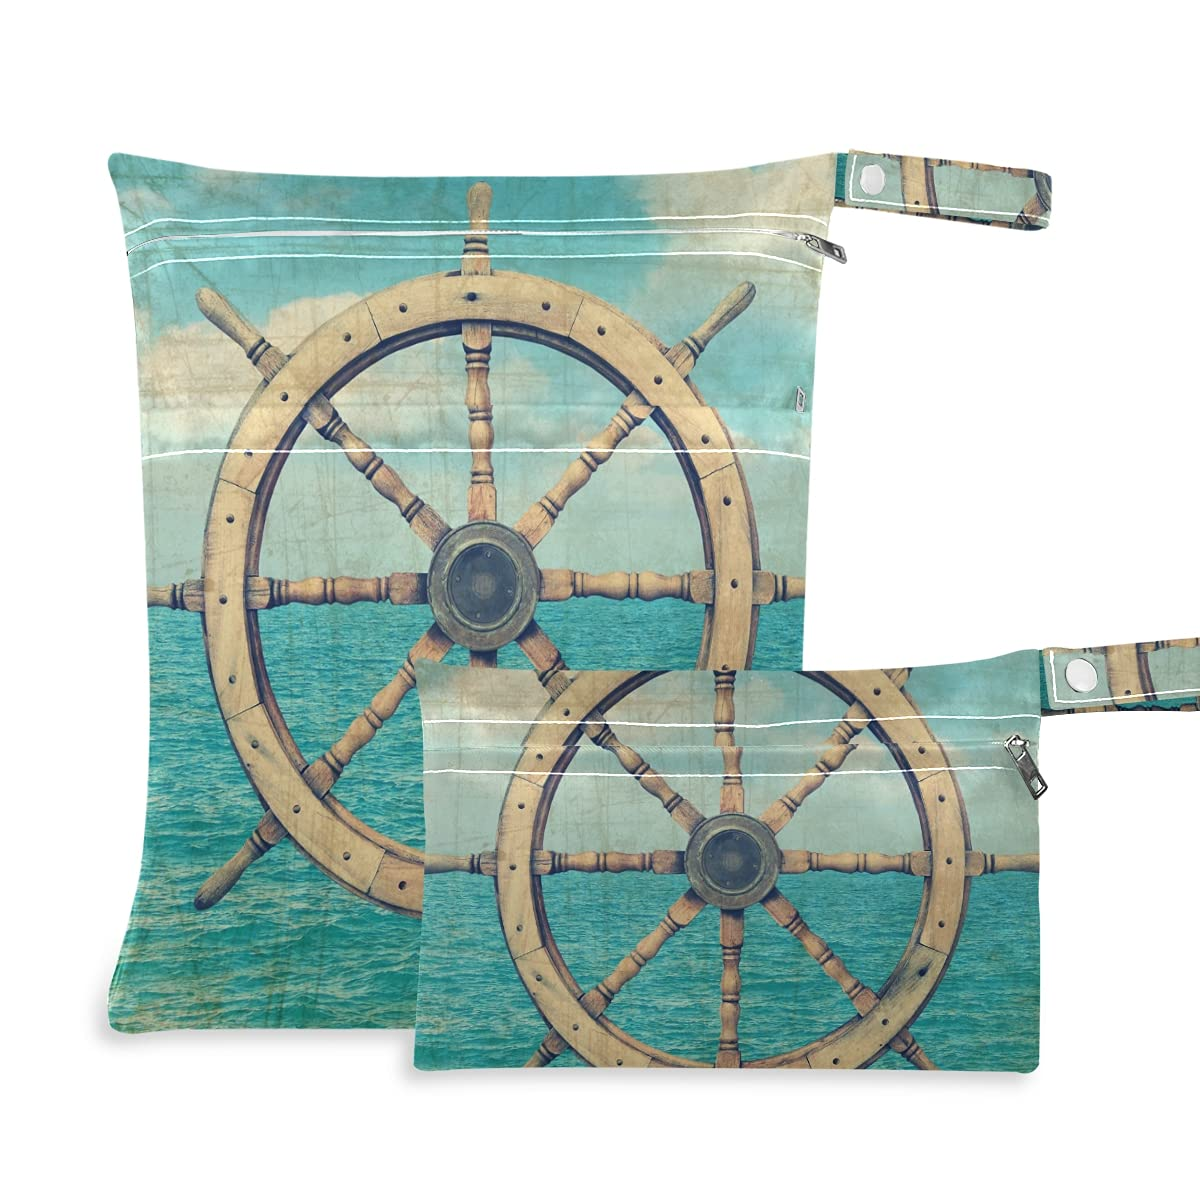 Steering Wheel Wet Dry Bag Quality inspection Swimsuits for Diaper Oklahoma City Mall Reusable